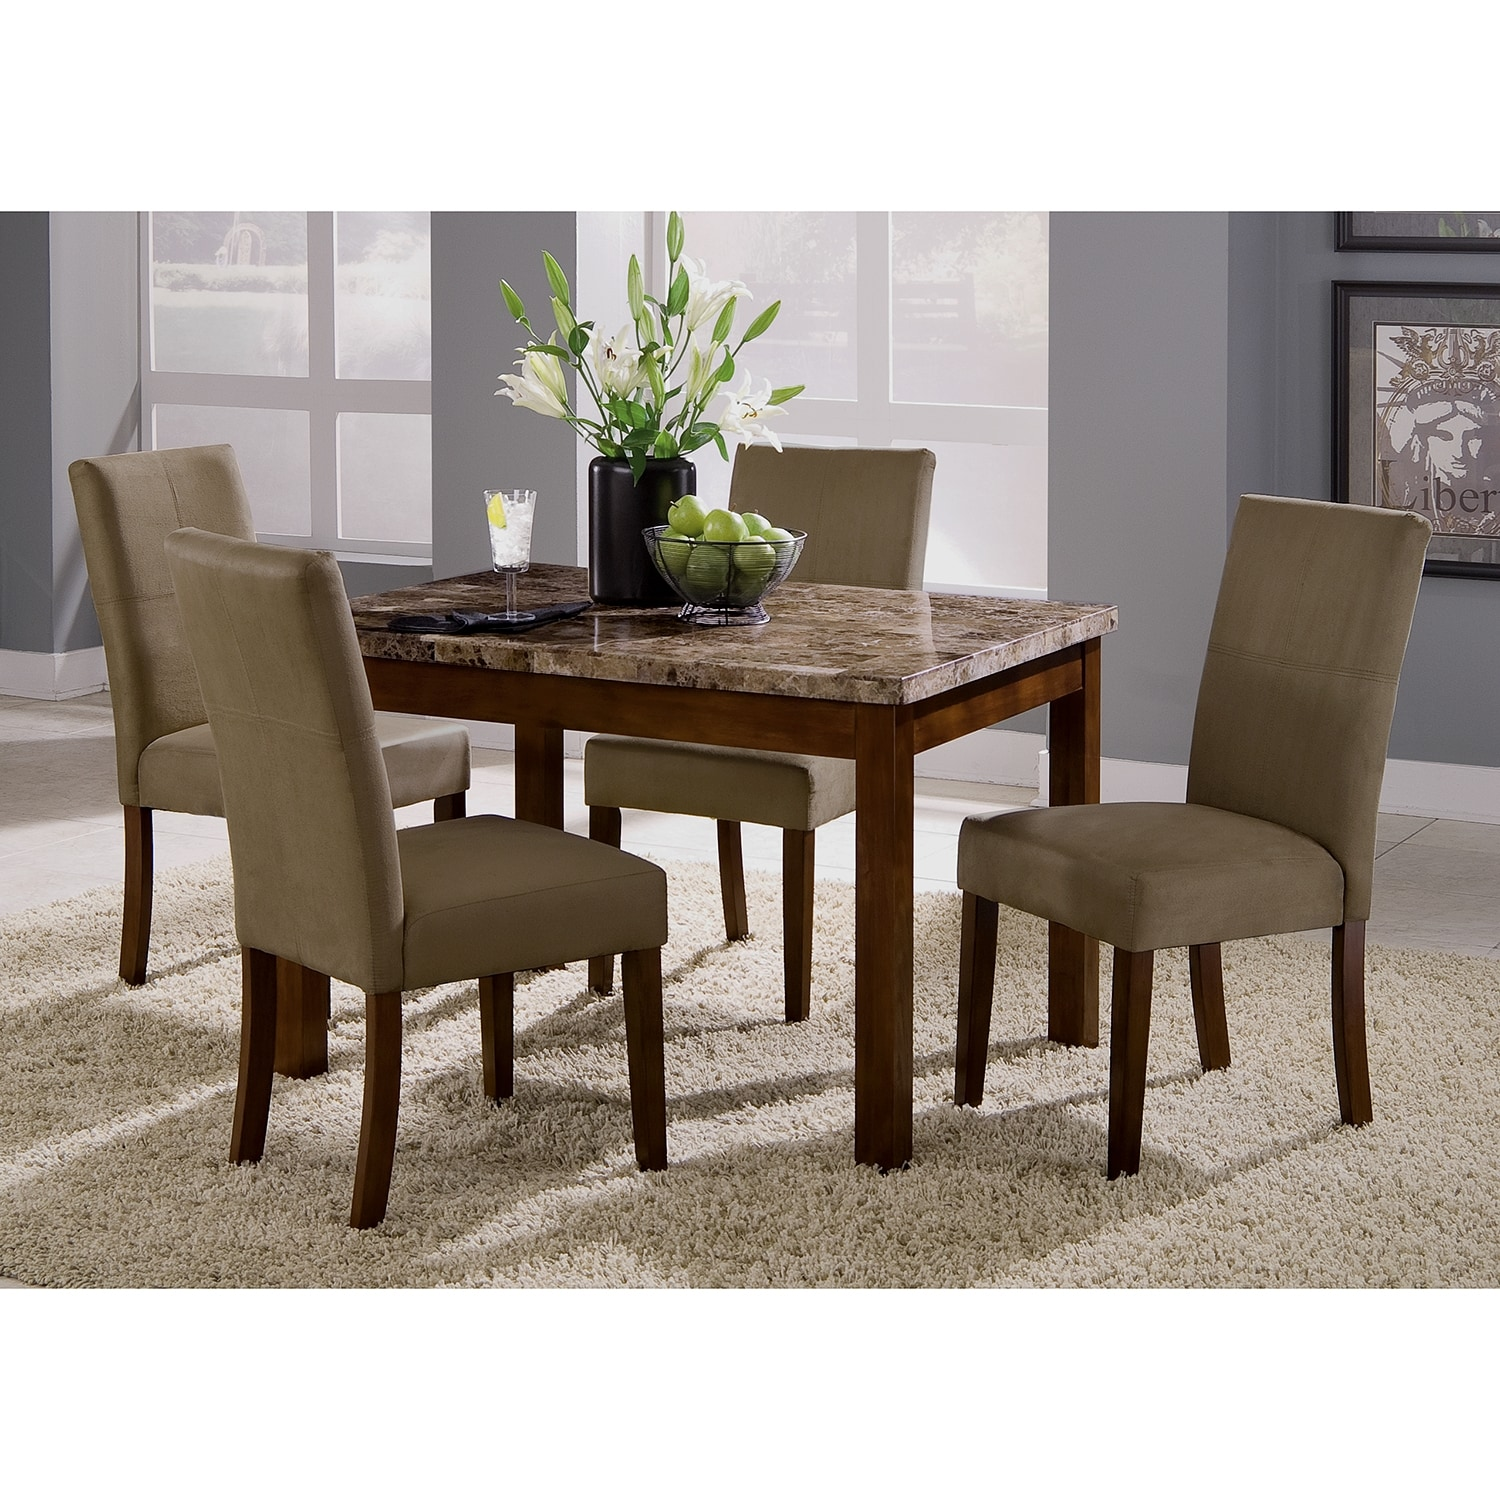 Cornerstone Dining Room Table Value City Furniture